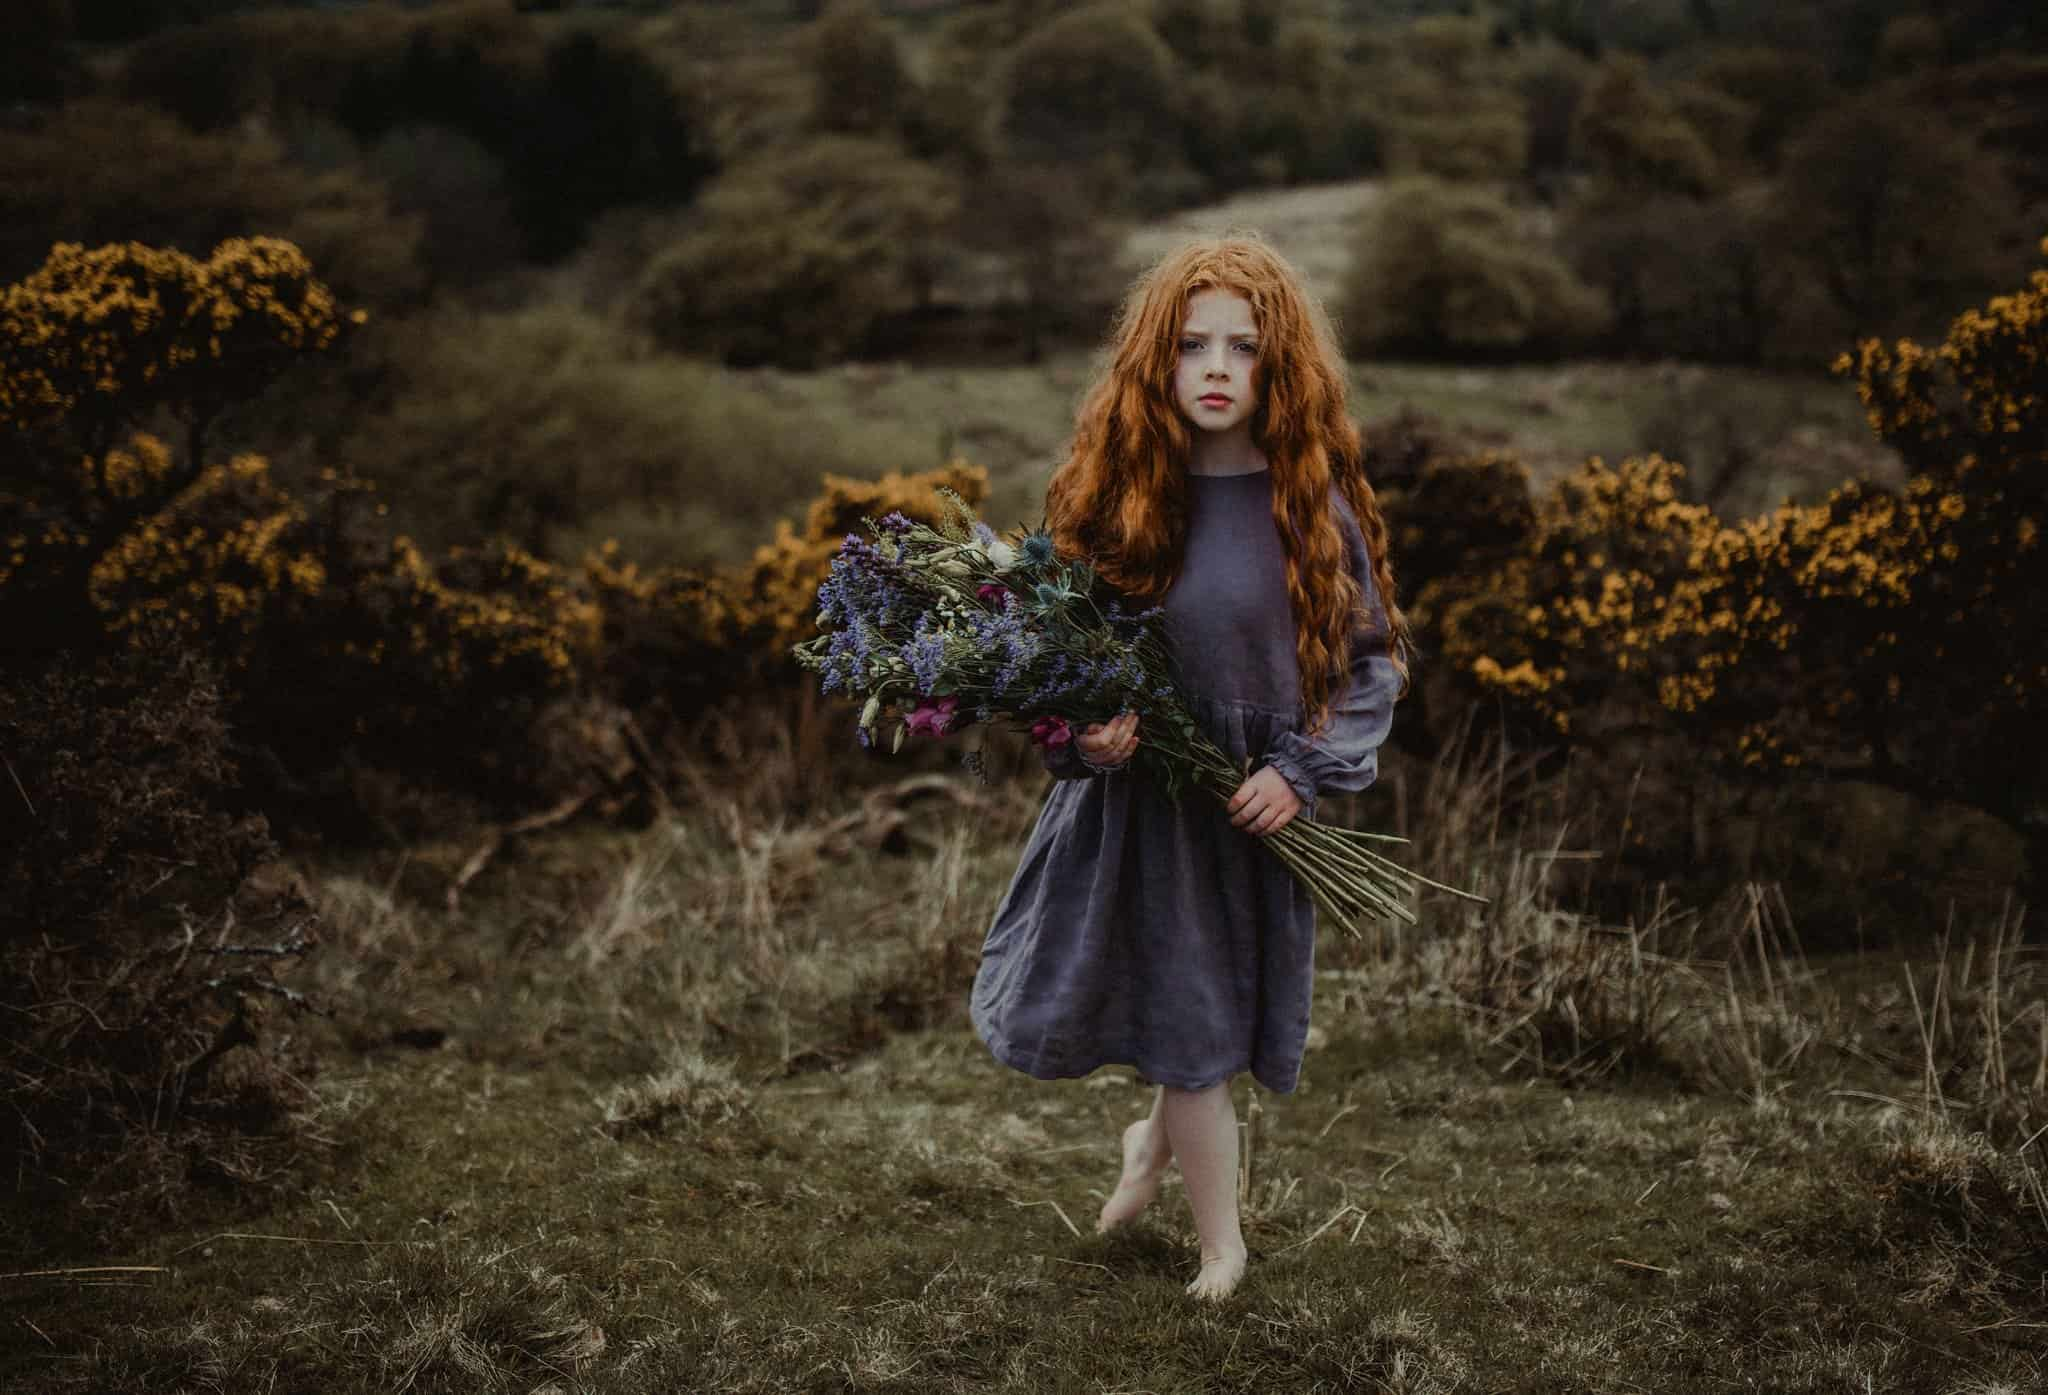 A girl that looks like Merida standing in a field holding flowers